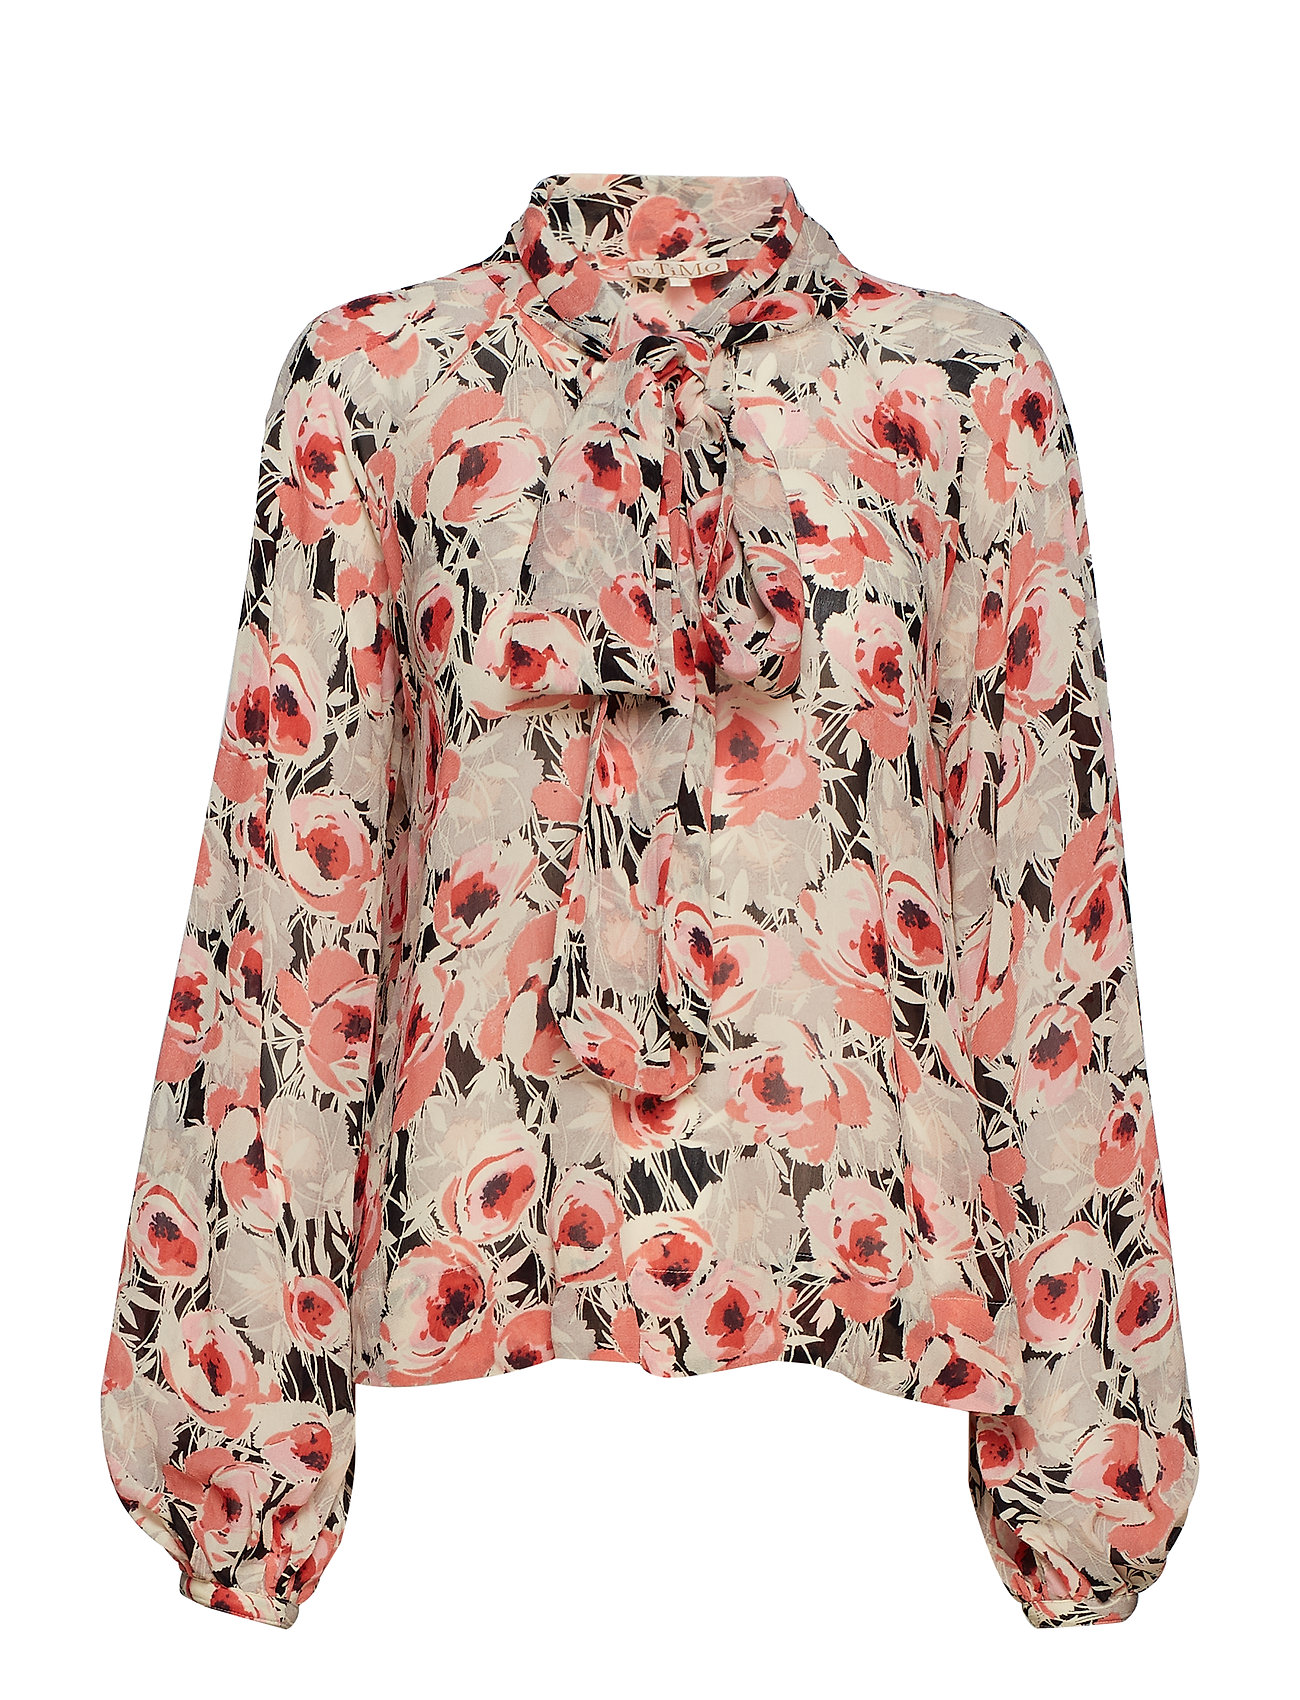 by Ti Mo Semi Couture Bow Blouse - 787 ANEMONE